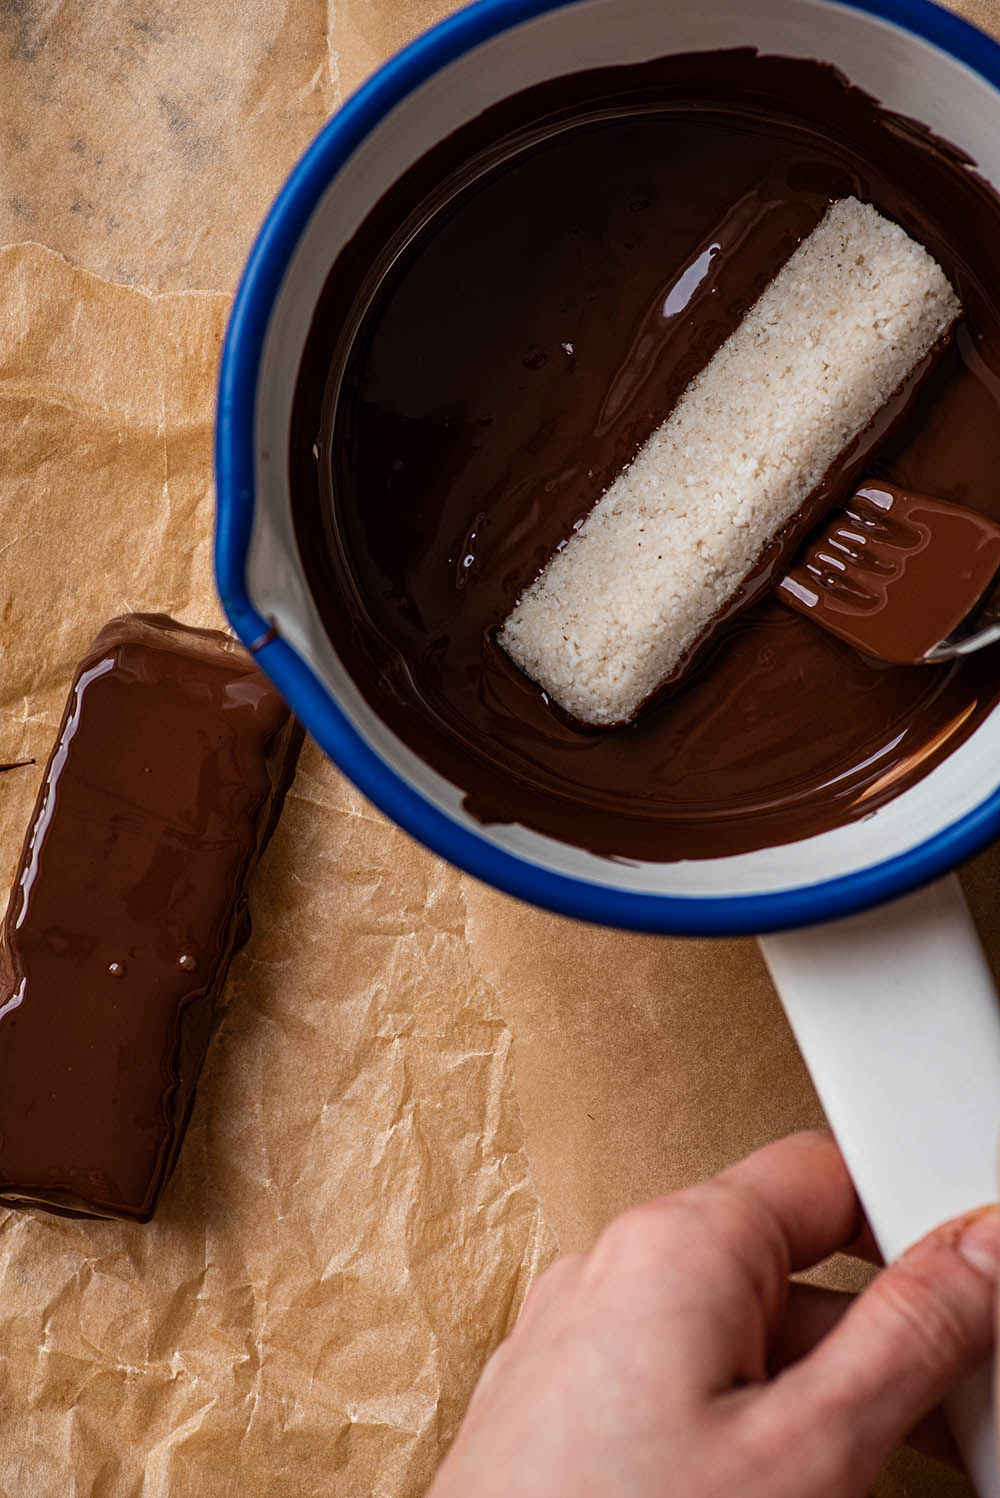 Dipping a coconut bar in melted chocolate.